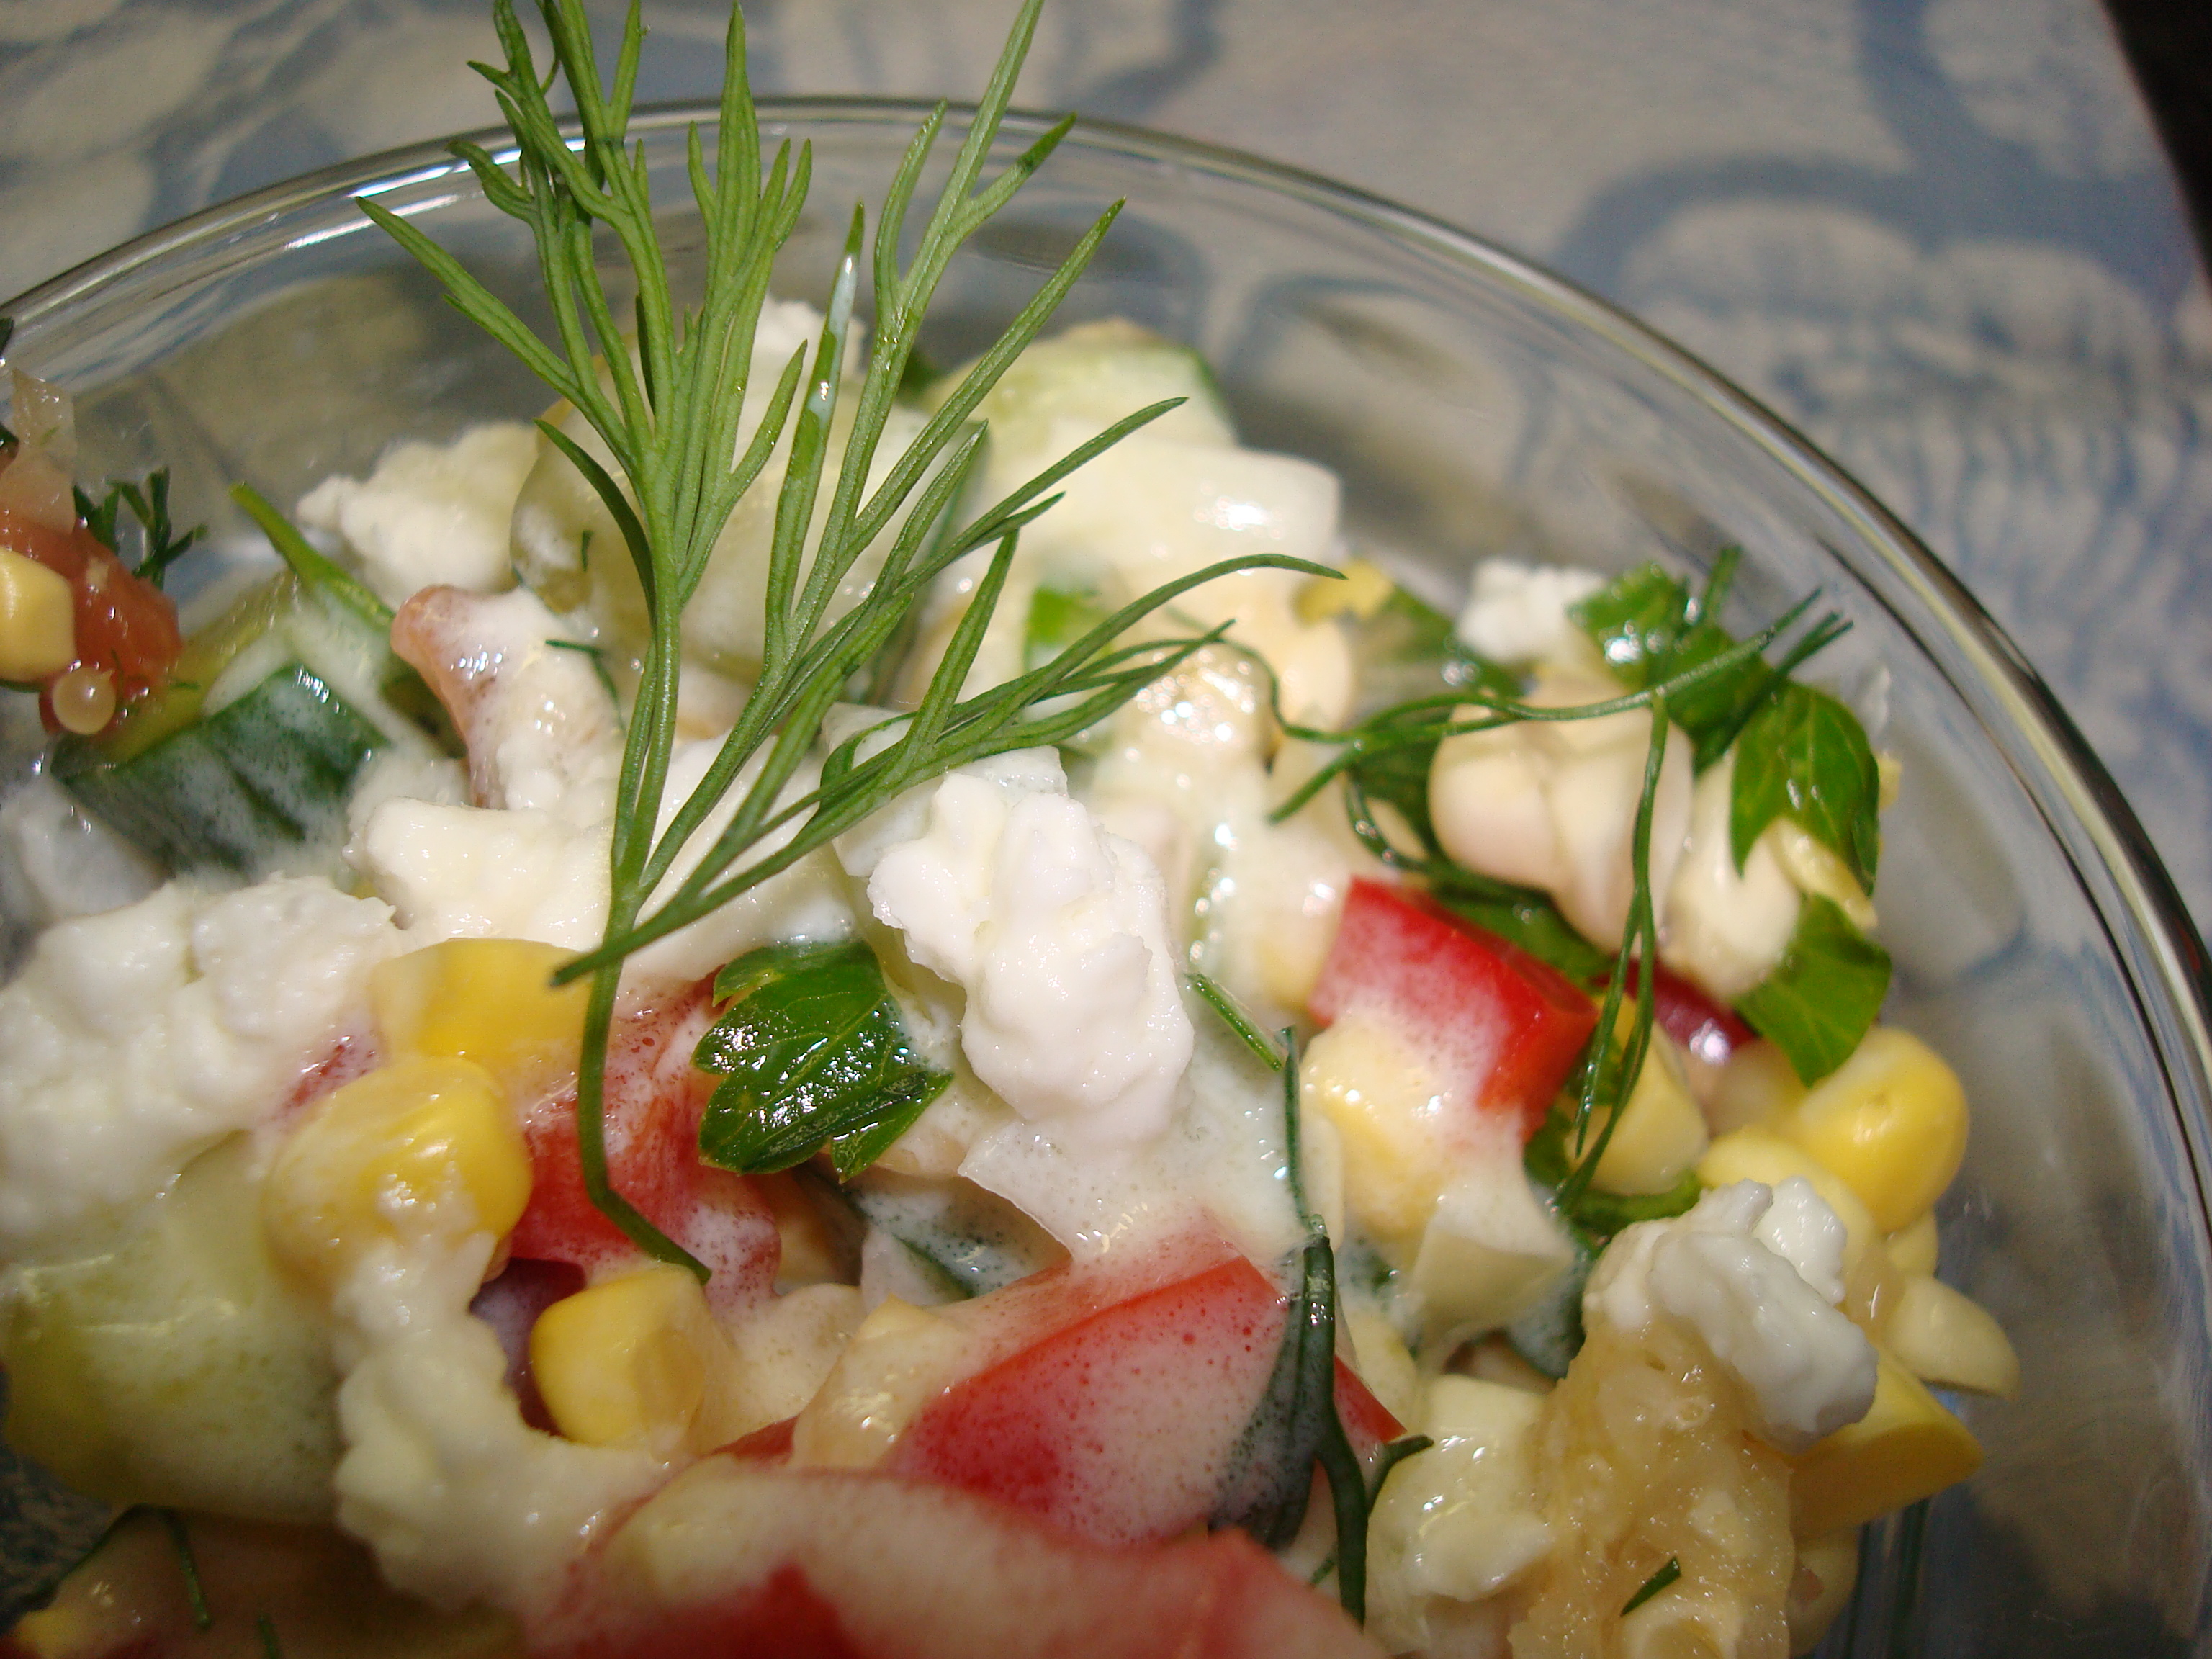 Dilled, Crunchy Sweet-Corn Salad with Buttermilk Dressing